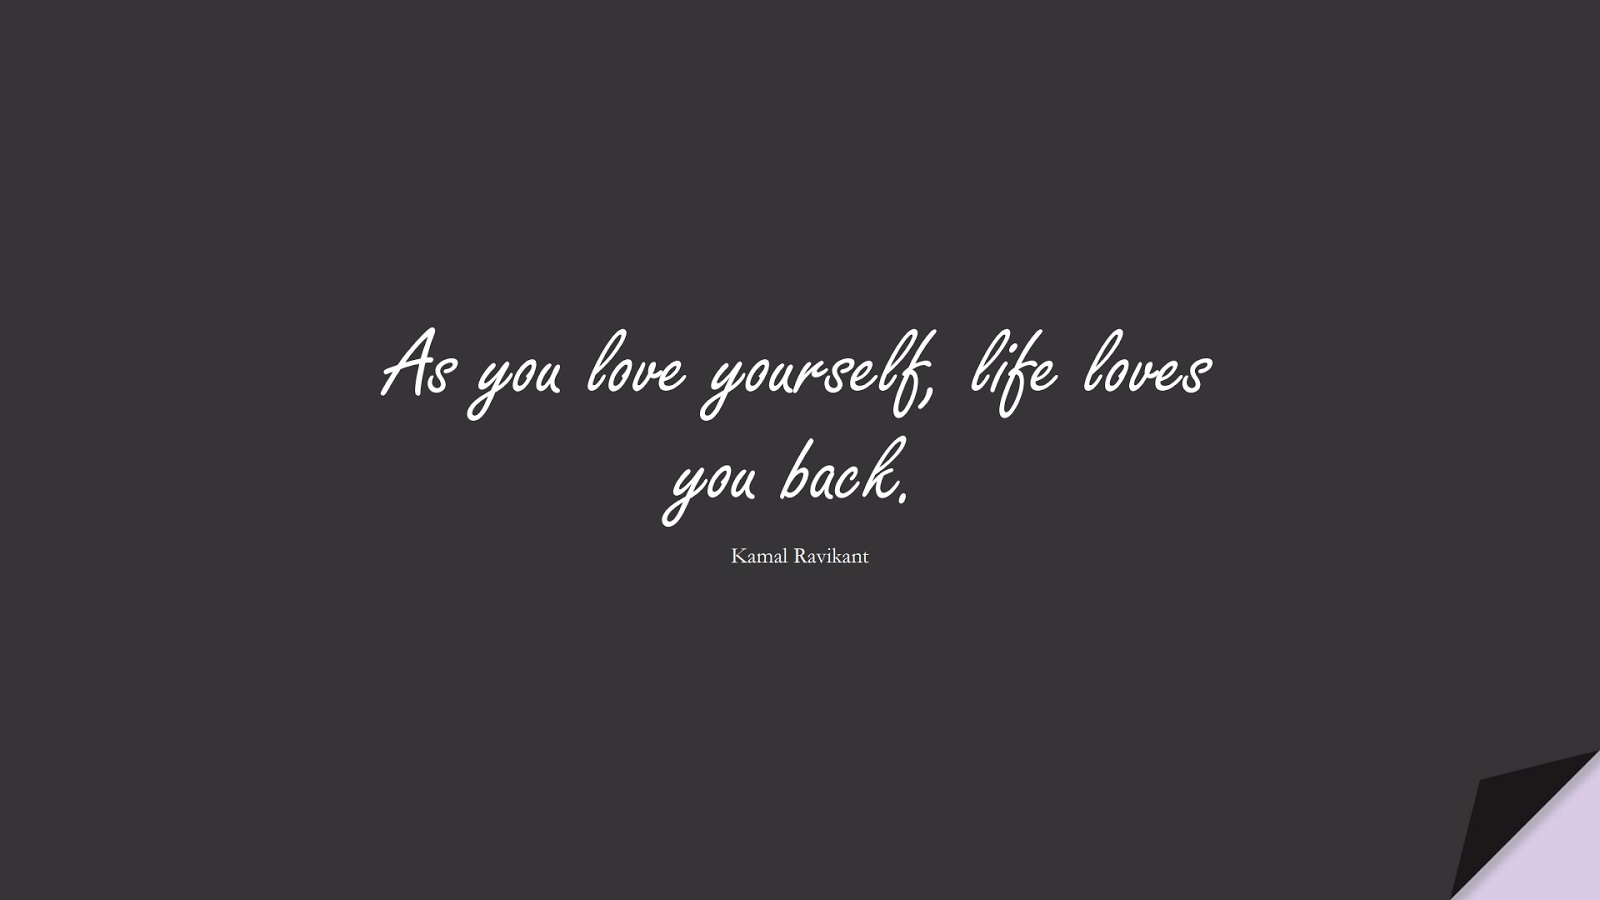 As you love yourself, life loves you back. (Kamal Ravikant);  #LoveYourselfQuotes